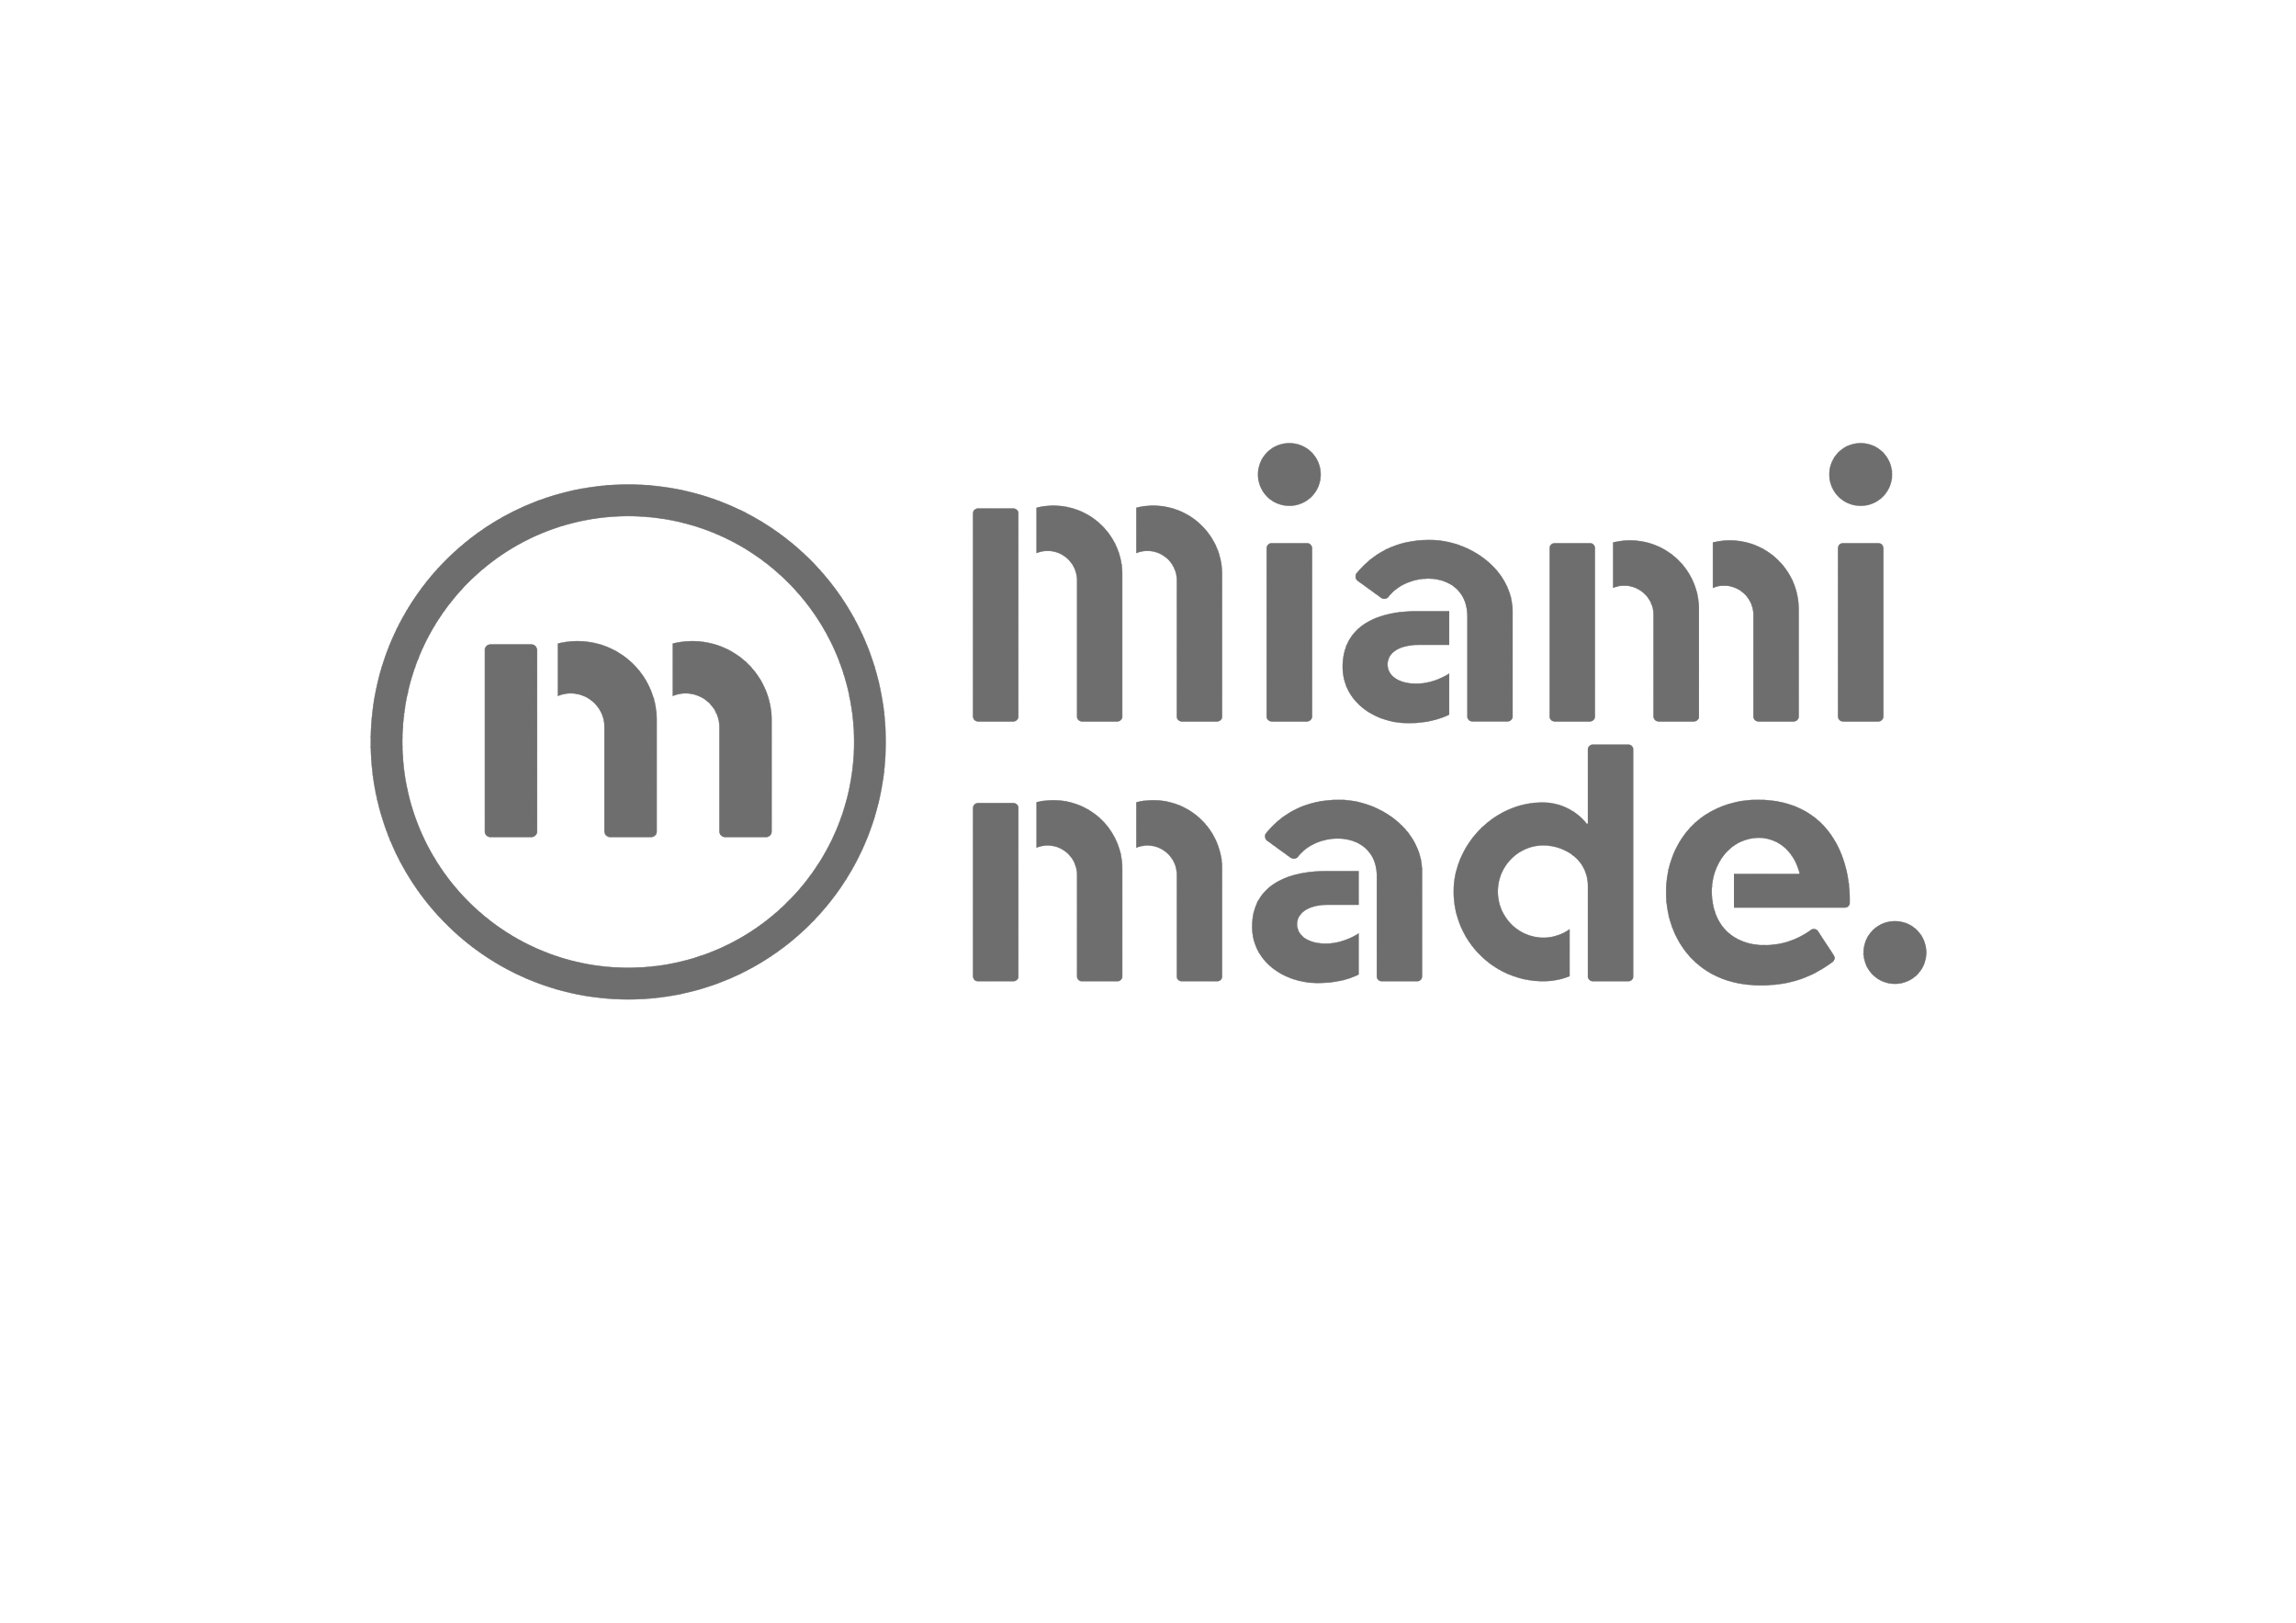 miamimade.png